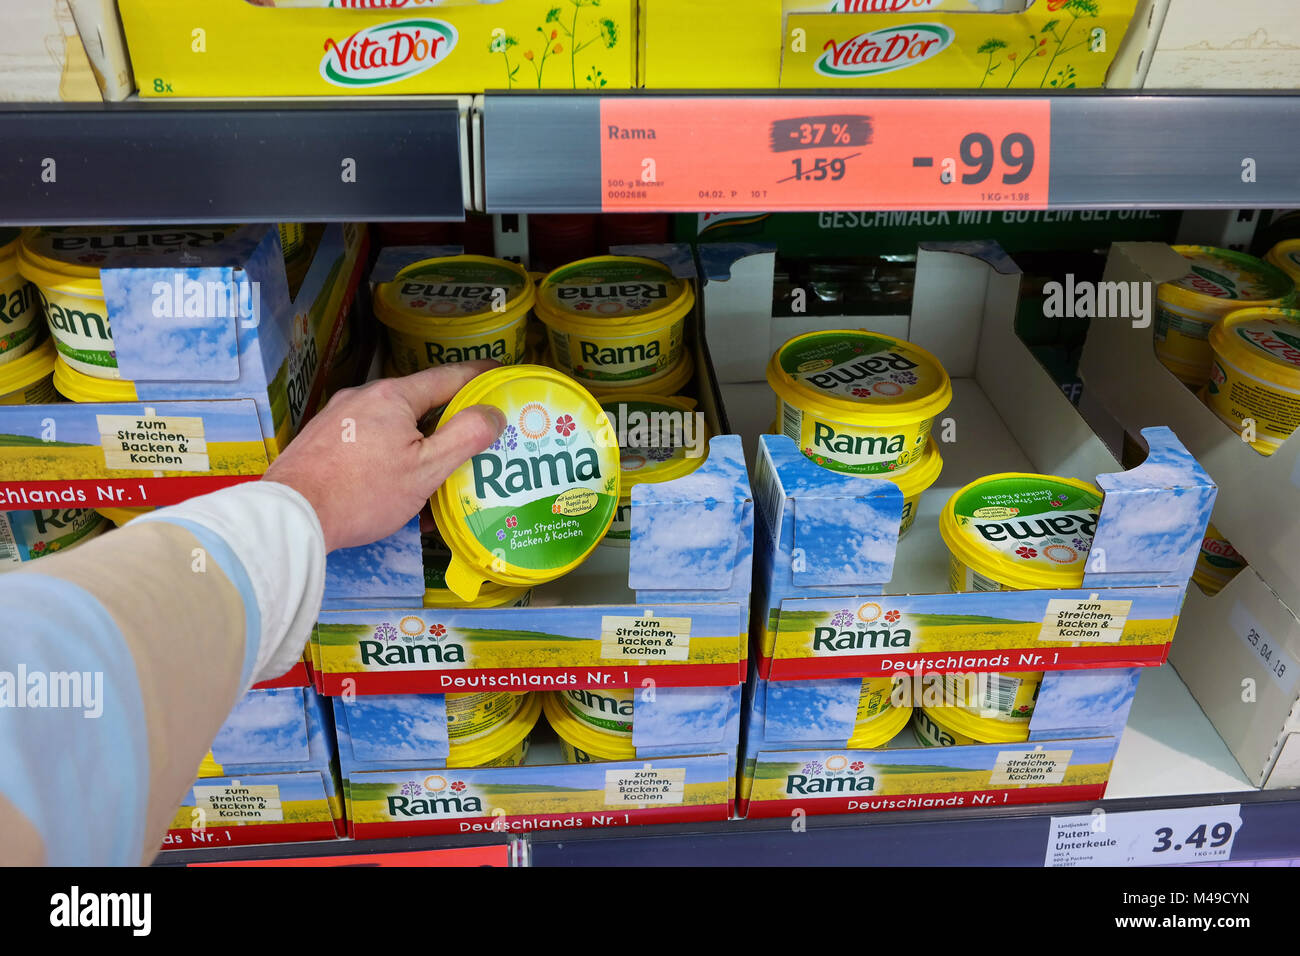 Tubs of Rama Margarine in a store - Stock Image